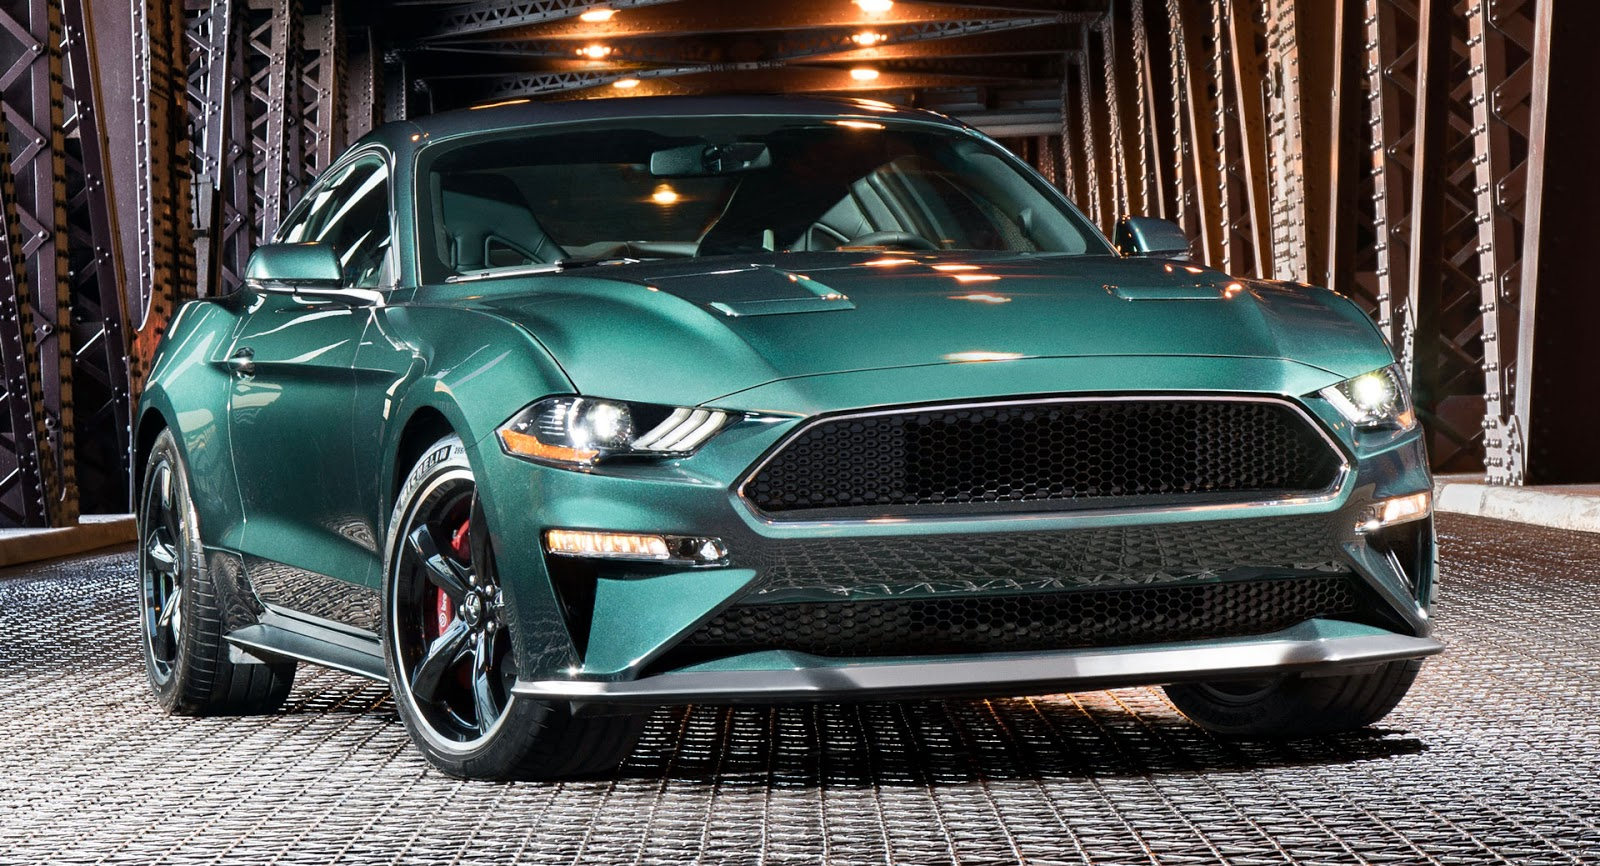 2019 ford mustang bullitt unveiled petrol portal. Black Bedroom Furniture Sets. Home Design Ideas